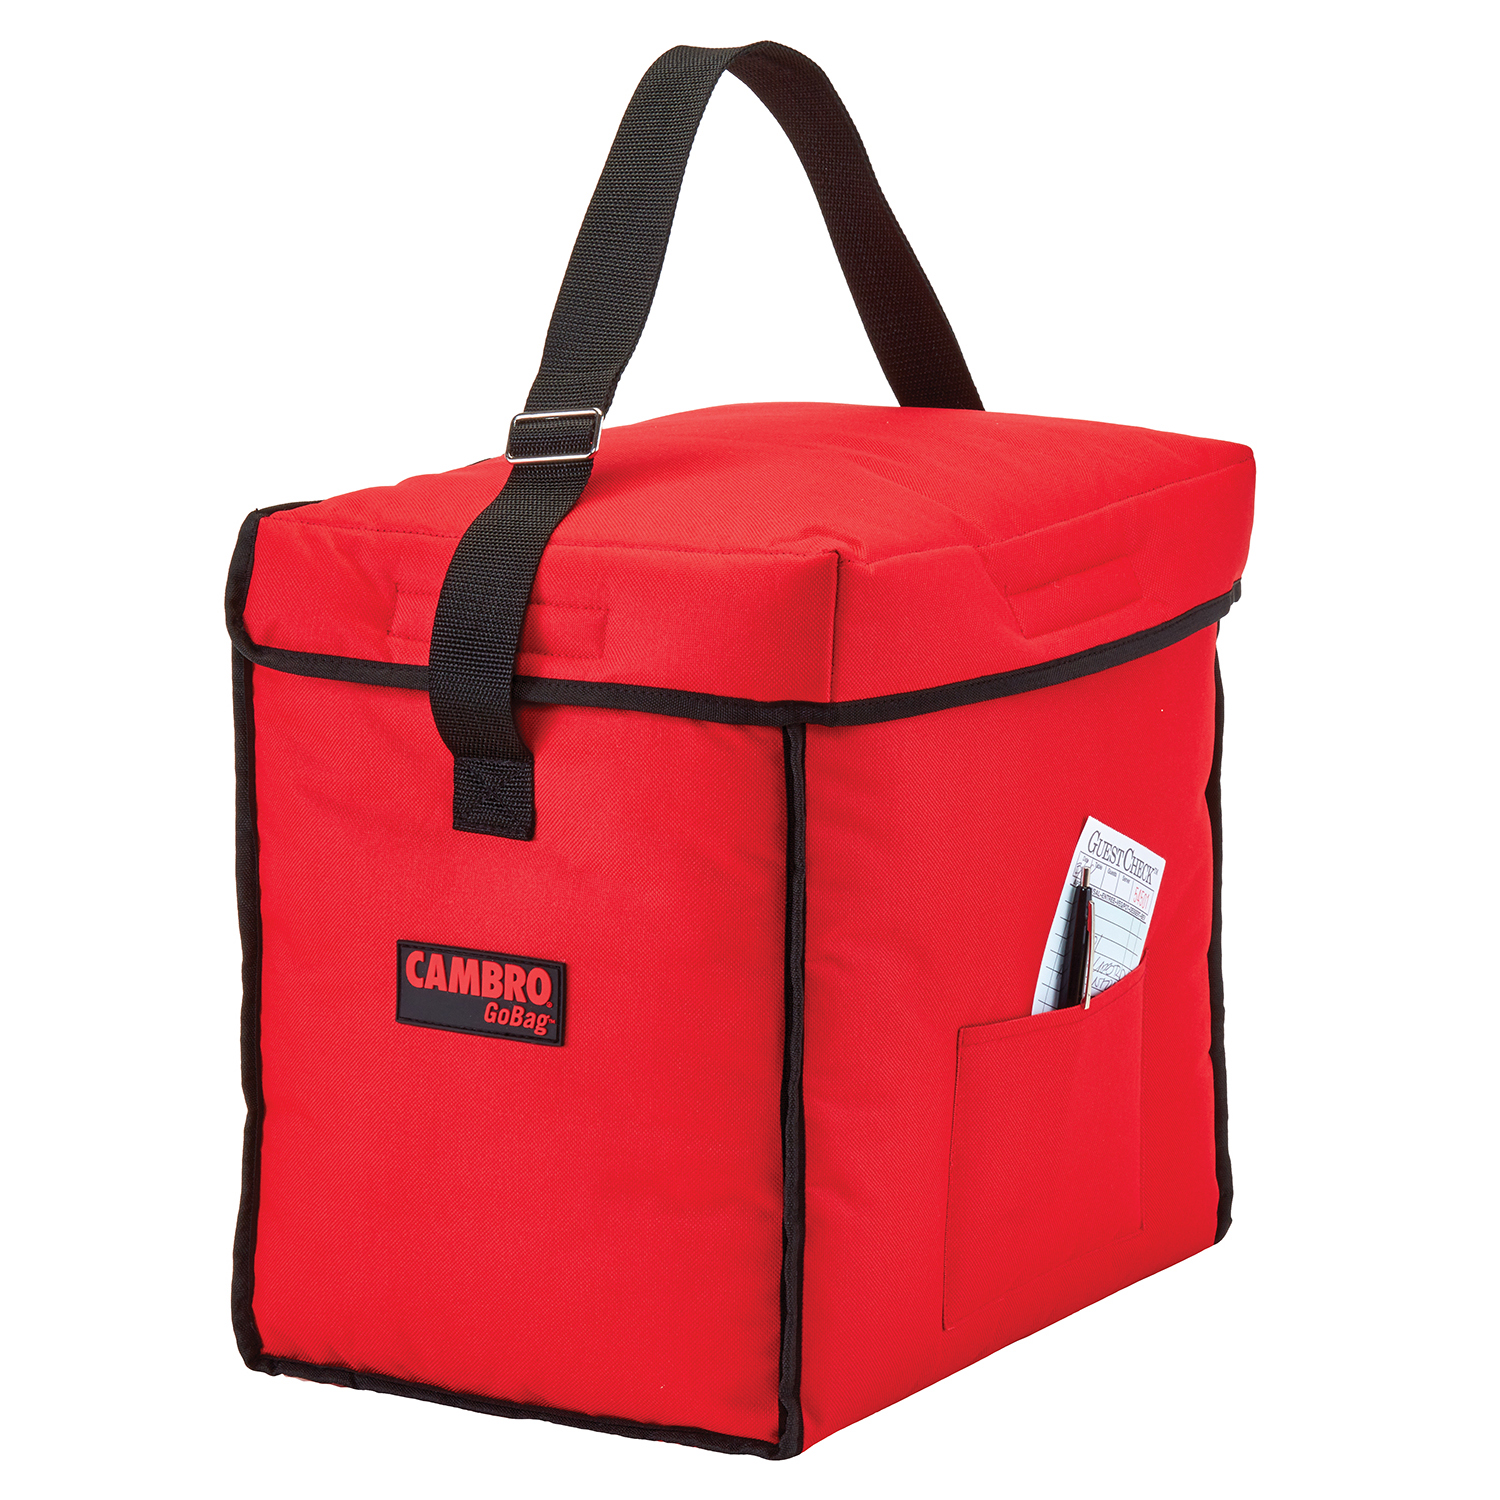 Cambro GBD13913521 food carrier, soft material